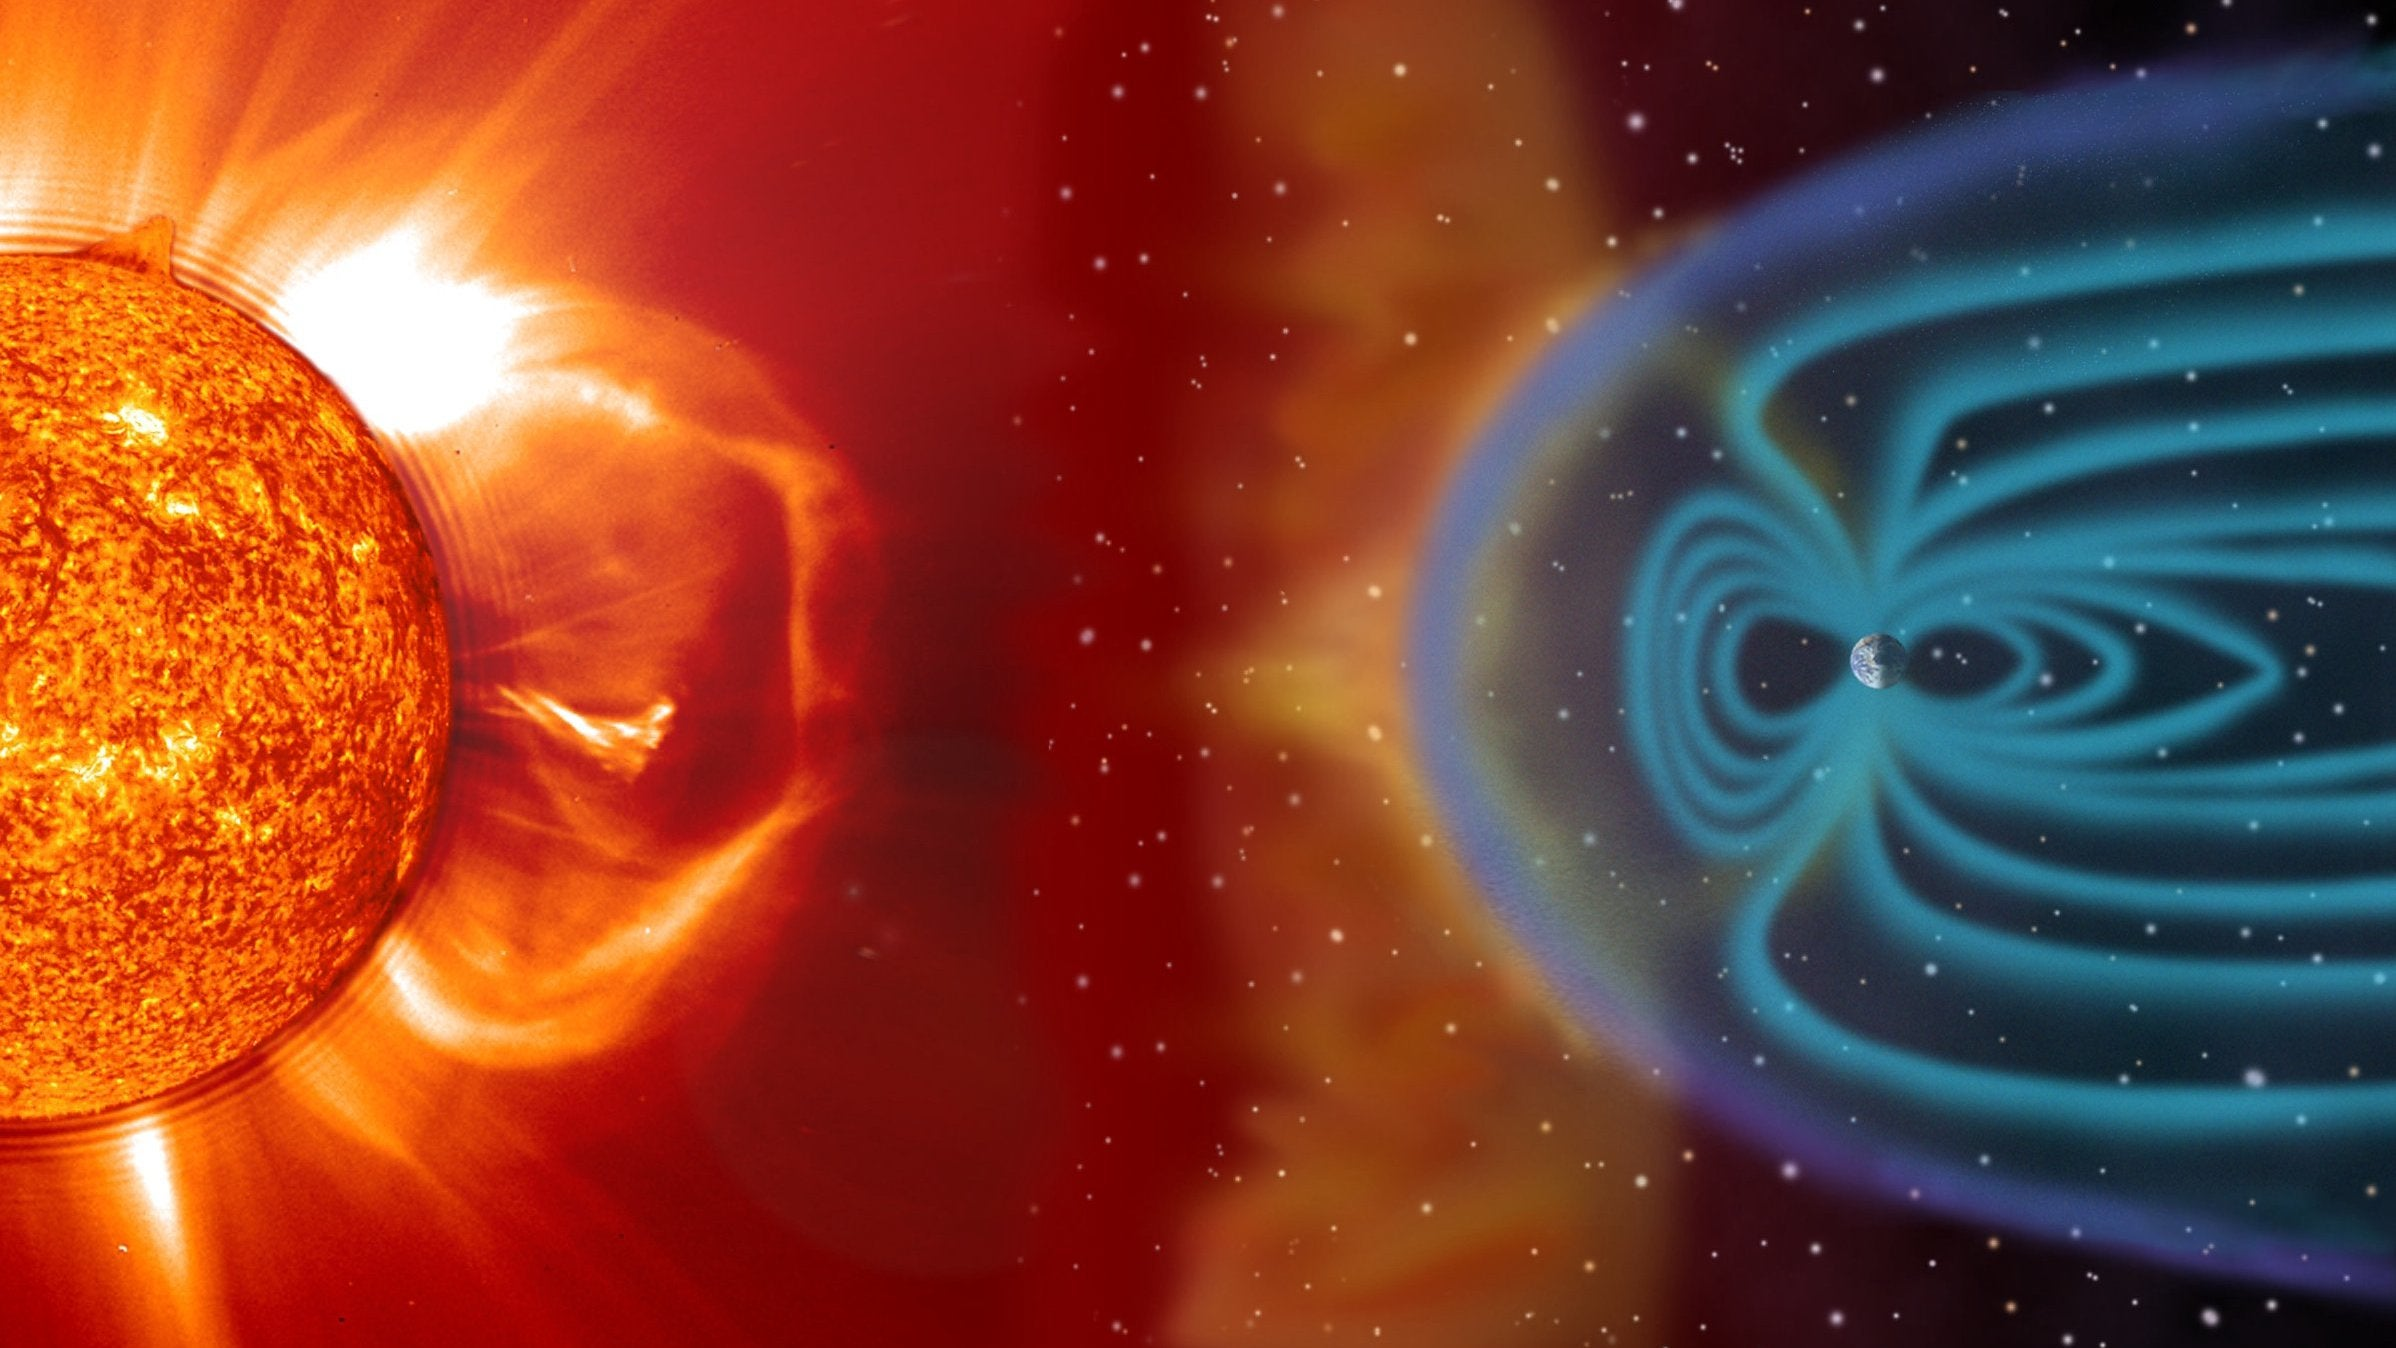 Evidence Shows Earth's Magnetic Field Once Flipped Quickly